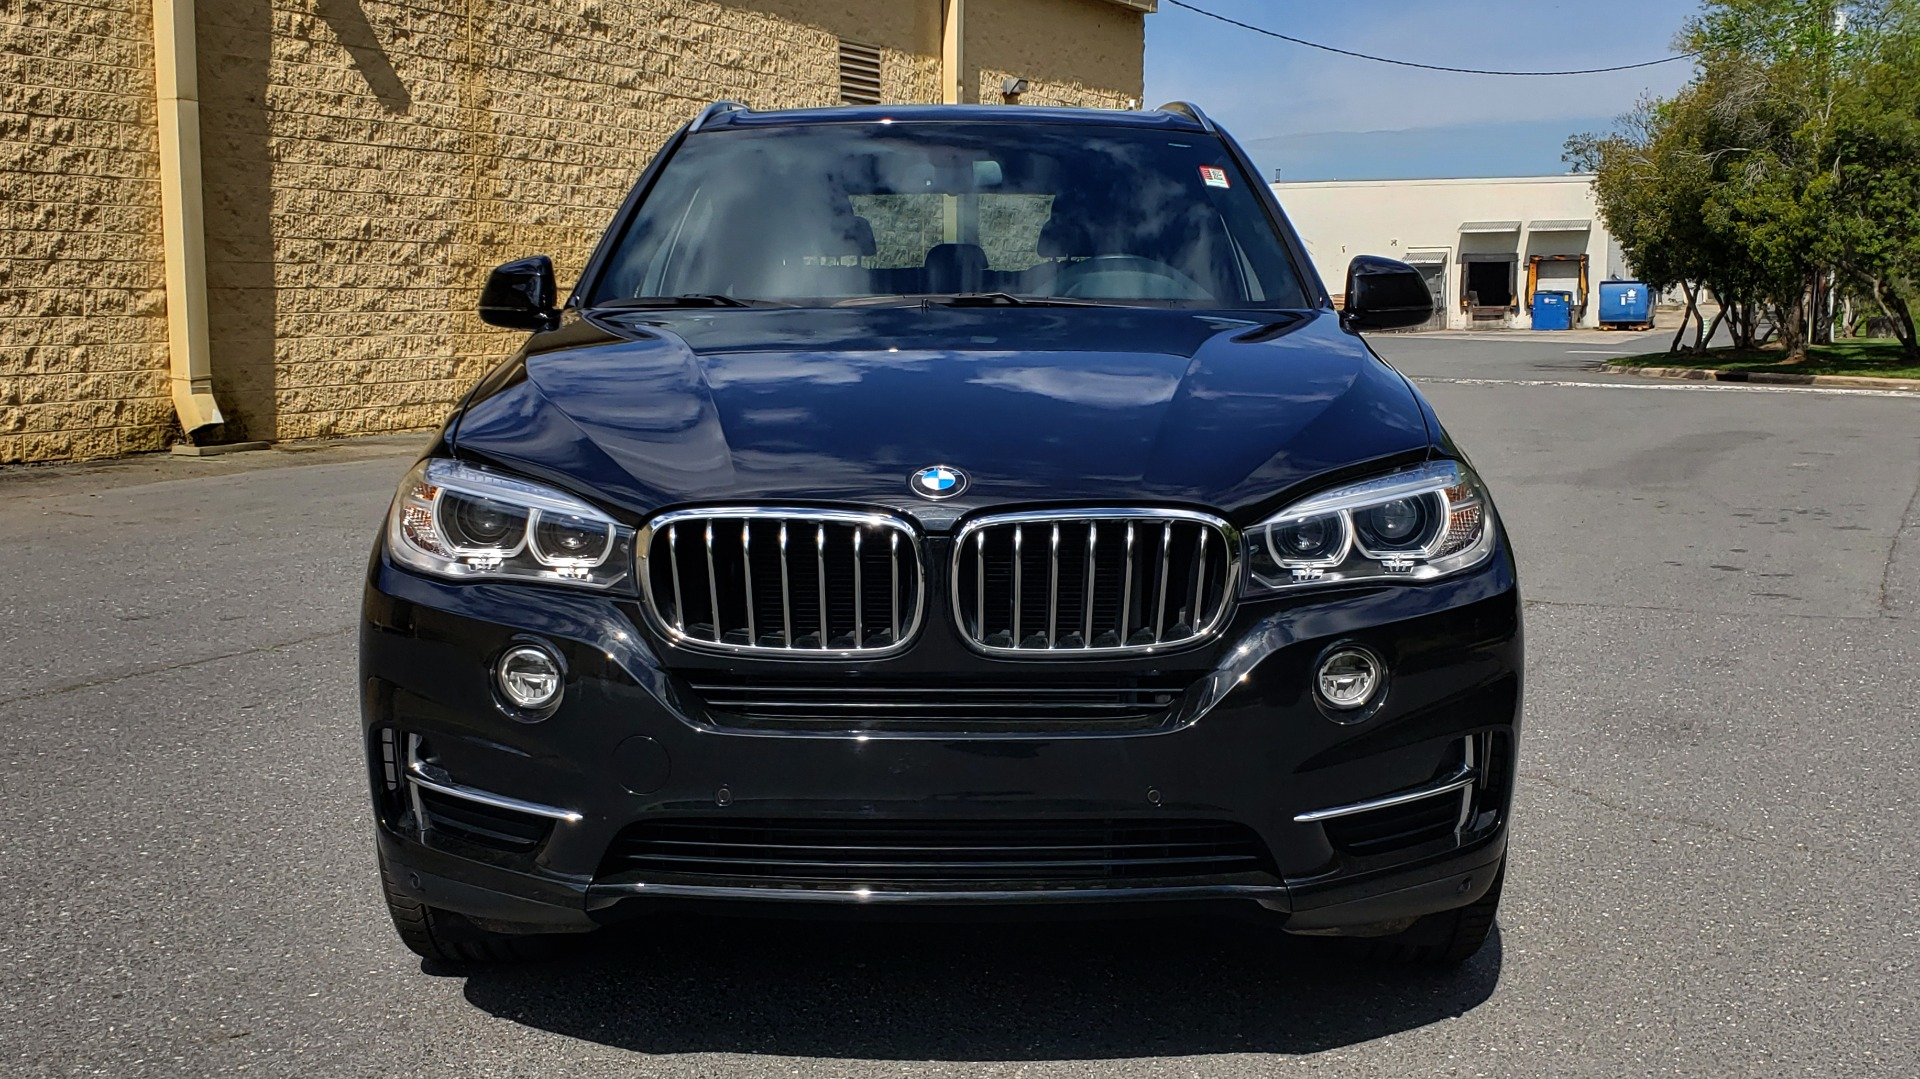 Used 2017 BMW X5 SDRIVE35I LUXURY / DRVR ASST / NAV / SUNROOF / REARVIEW for sale Sold at Formula Imports in Charlotte NC 28227 20